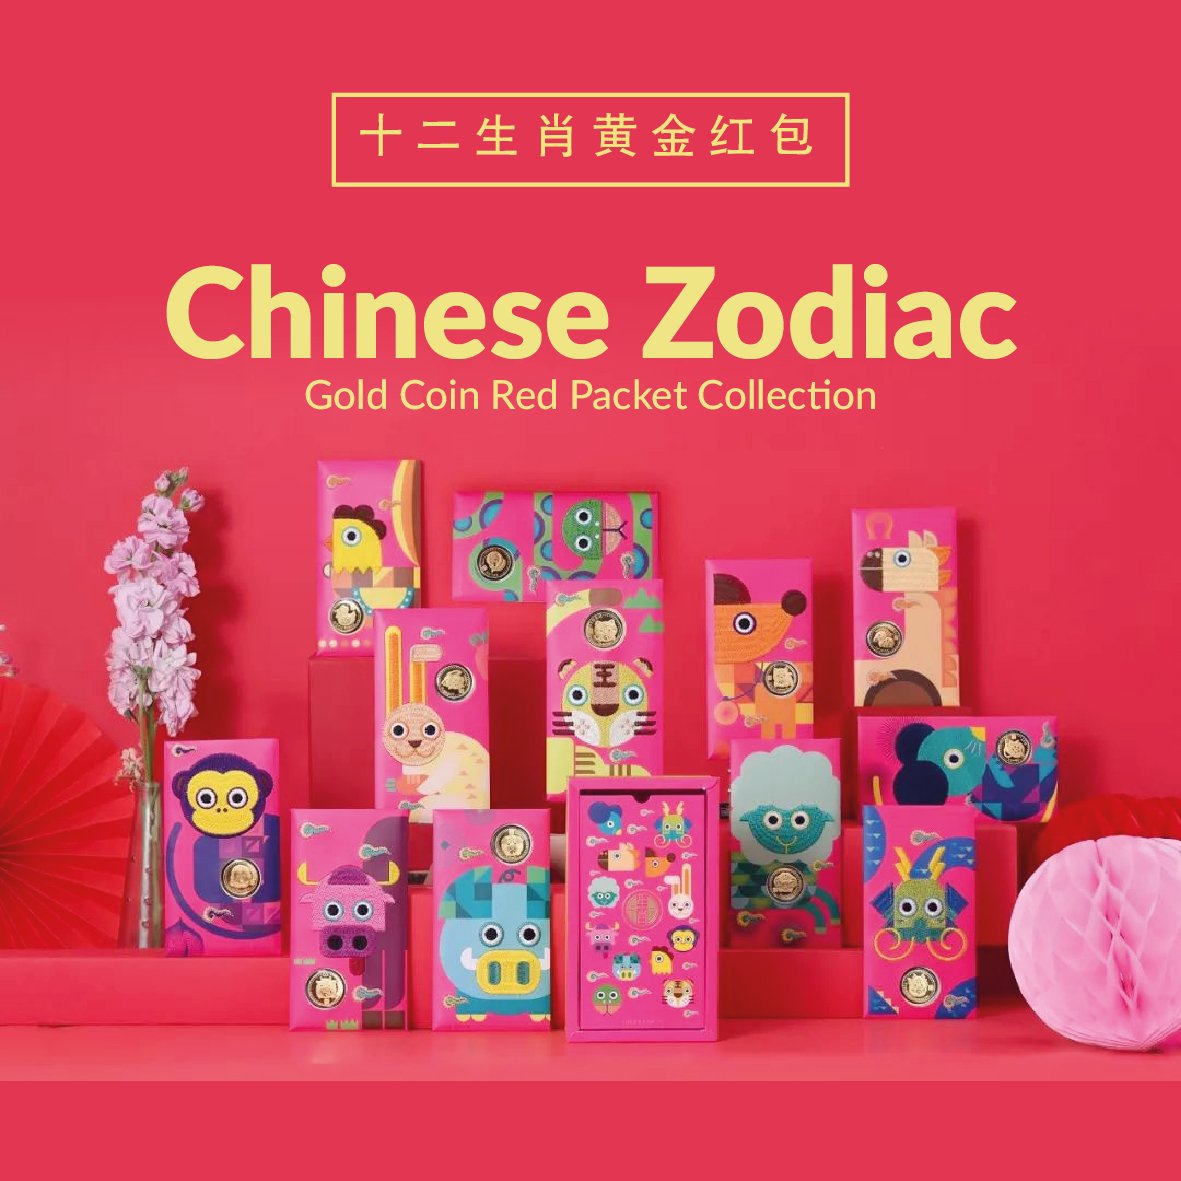 Chinese Zodiac Gold Coin Red Packet Collection (Single Design)